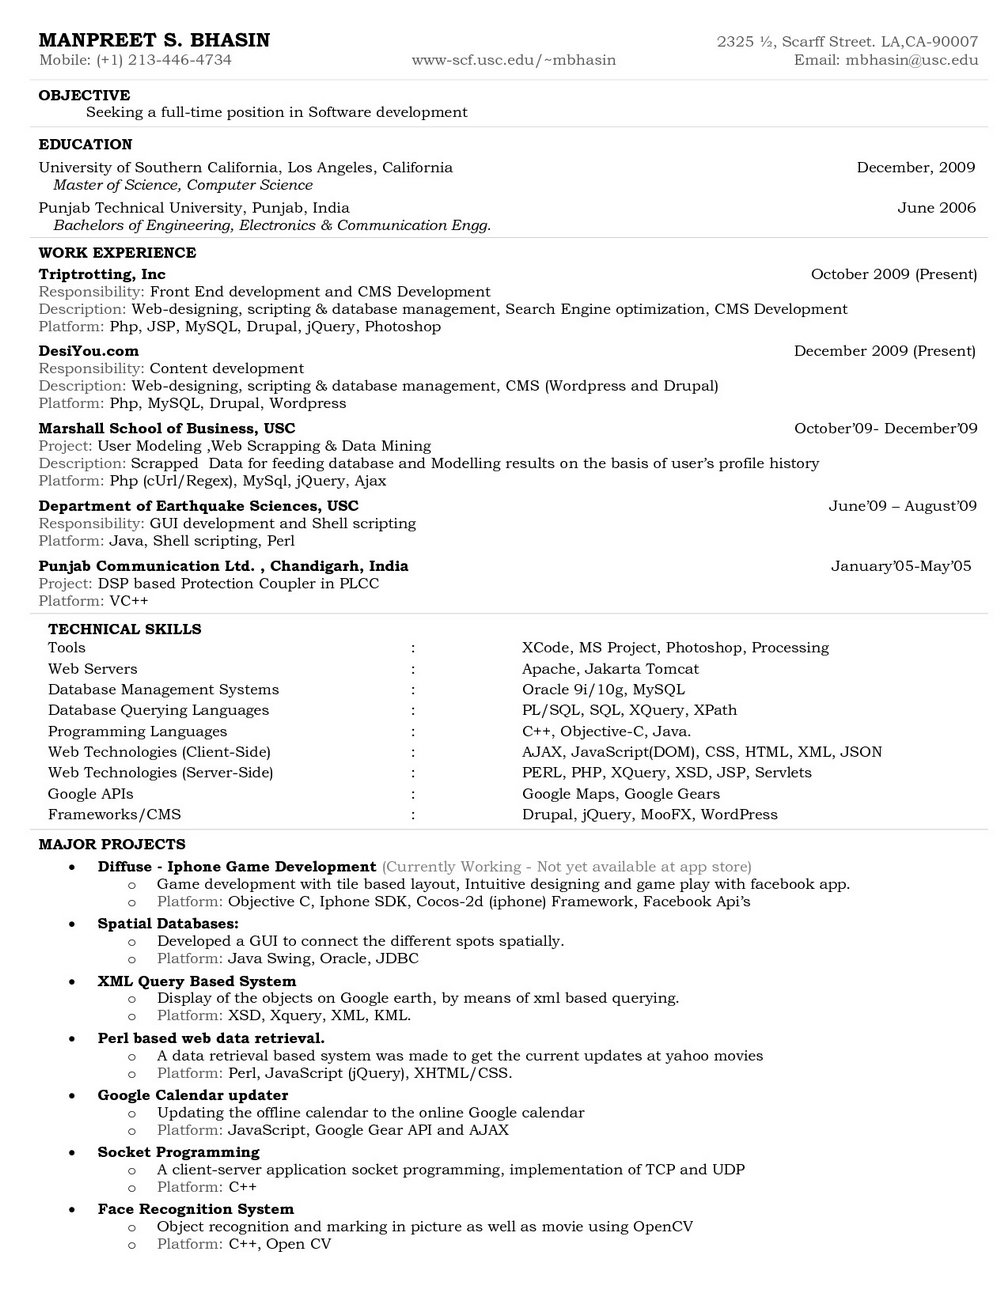 Resume Search Engines For Employers